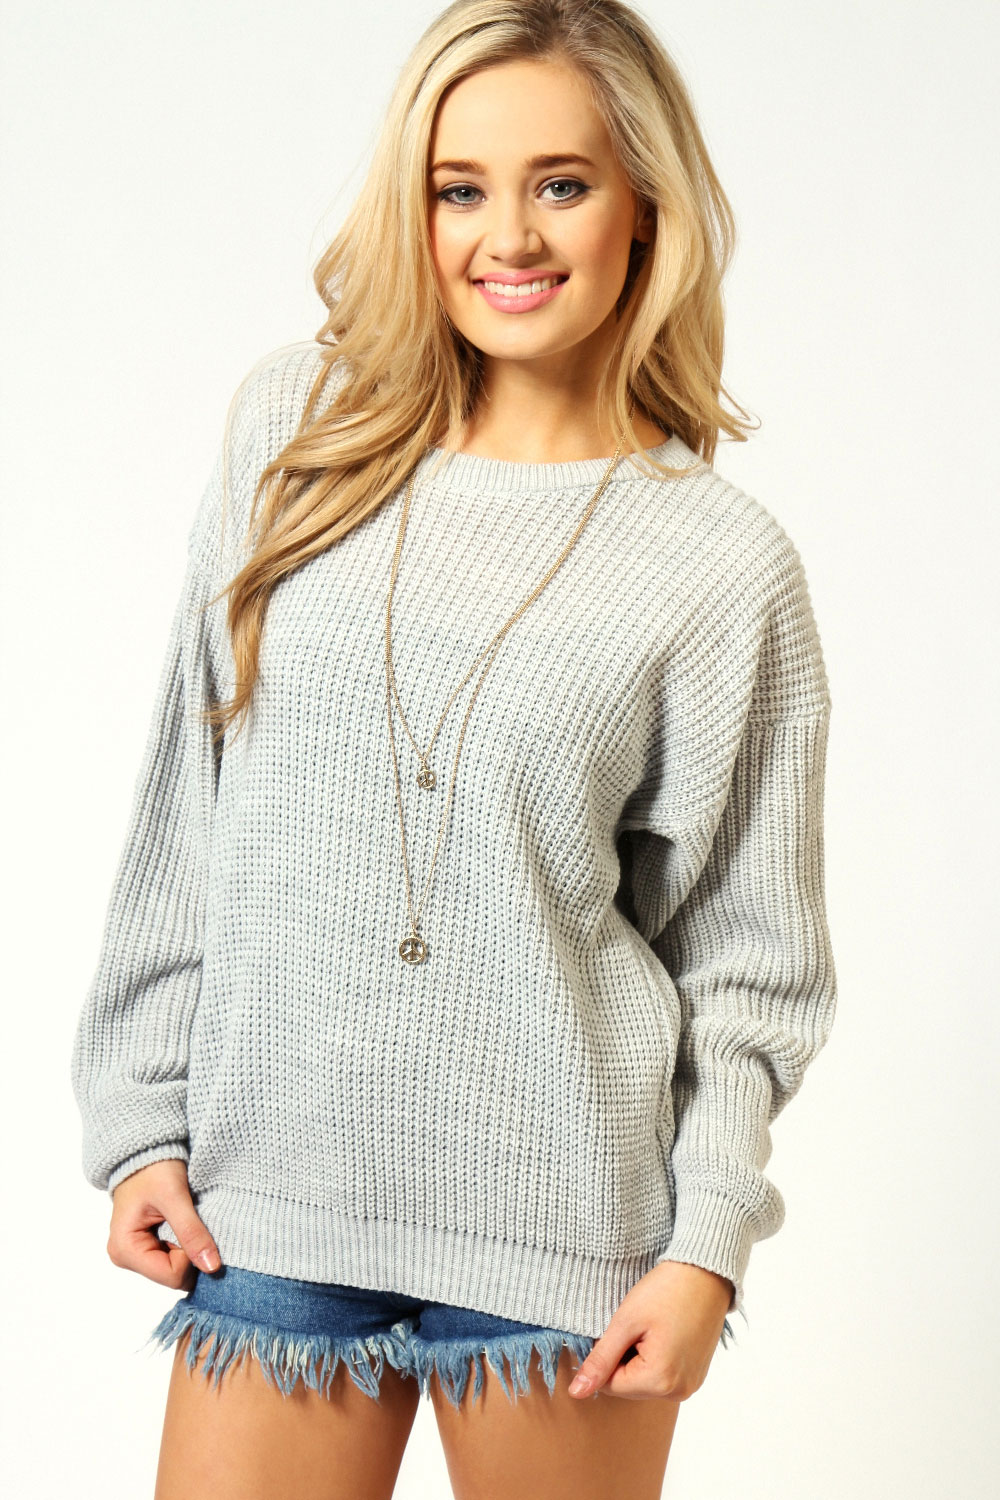 Find Women's Oversized Sweaters, Juniors Oversized Sweaters and Cowl Neck Oversized Sweaters at Macys! Macy's Presents: The Edit - A curated mix of fashion and inspiration Check It Out Free Shipping with $75 purchase + Free Store Pickup.